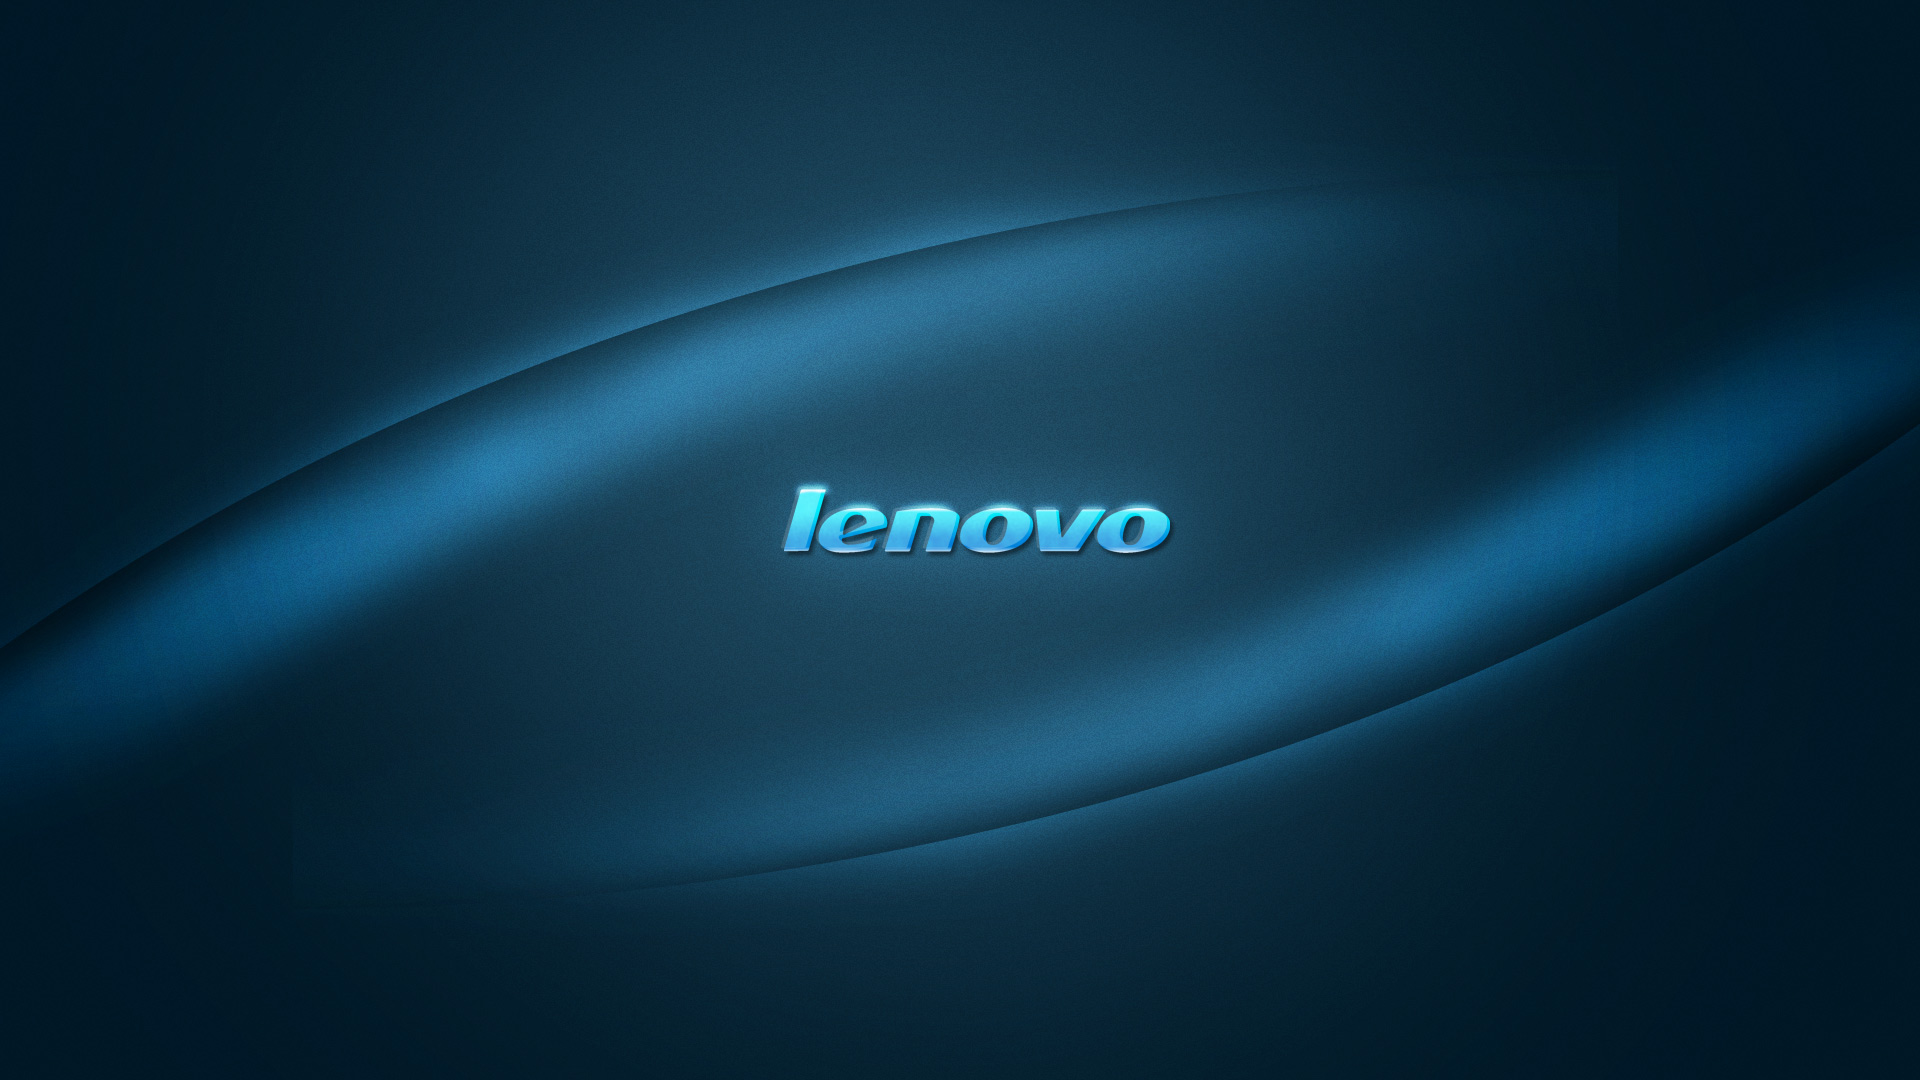 lenovo wallpaper wallpapers malkowitch 1920x1080